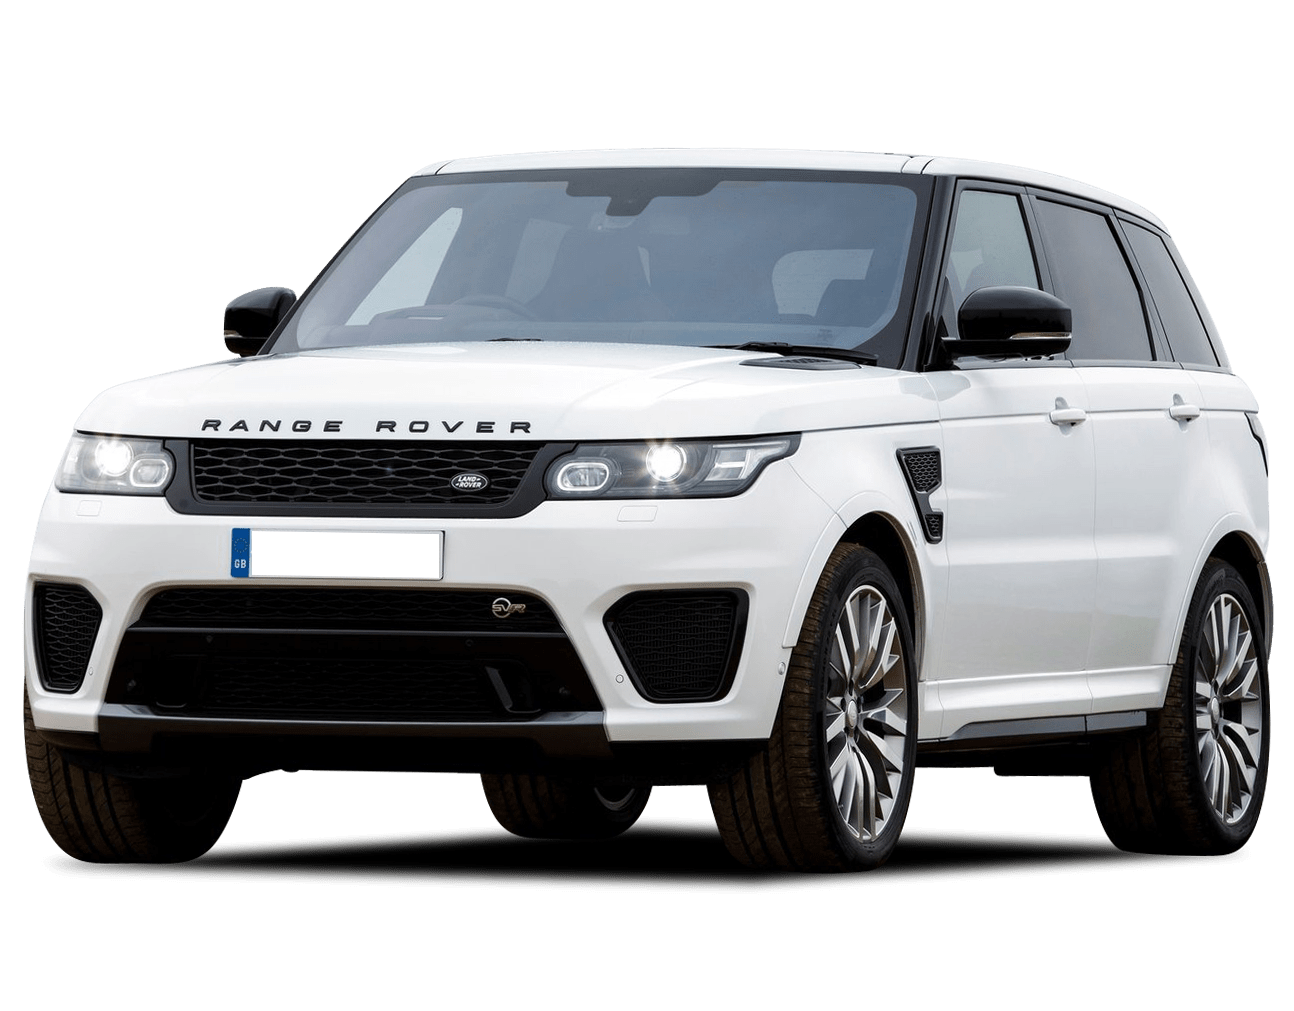 sport surging official rover hybrid prices landrover in pics first the line my specs plug up new and price magazine a car rr by pictures plus joins land phev news range updates